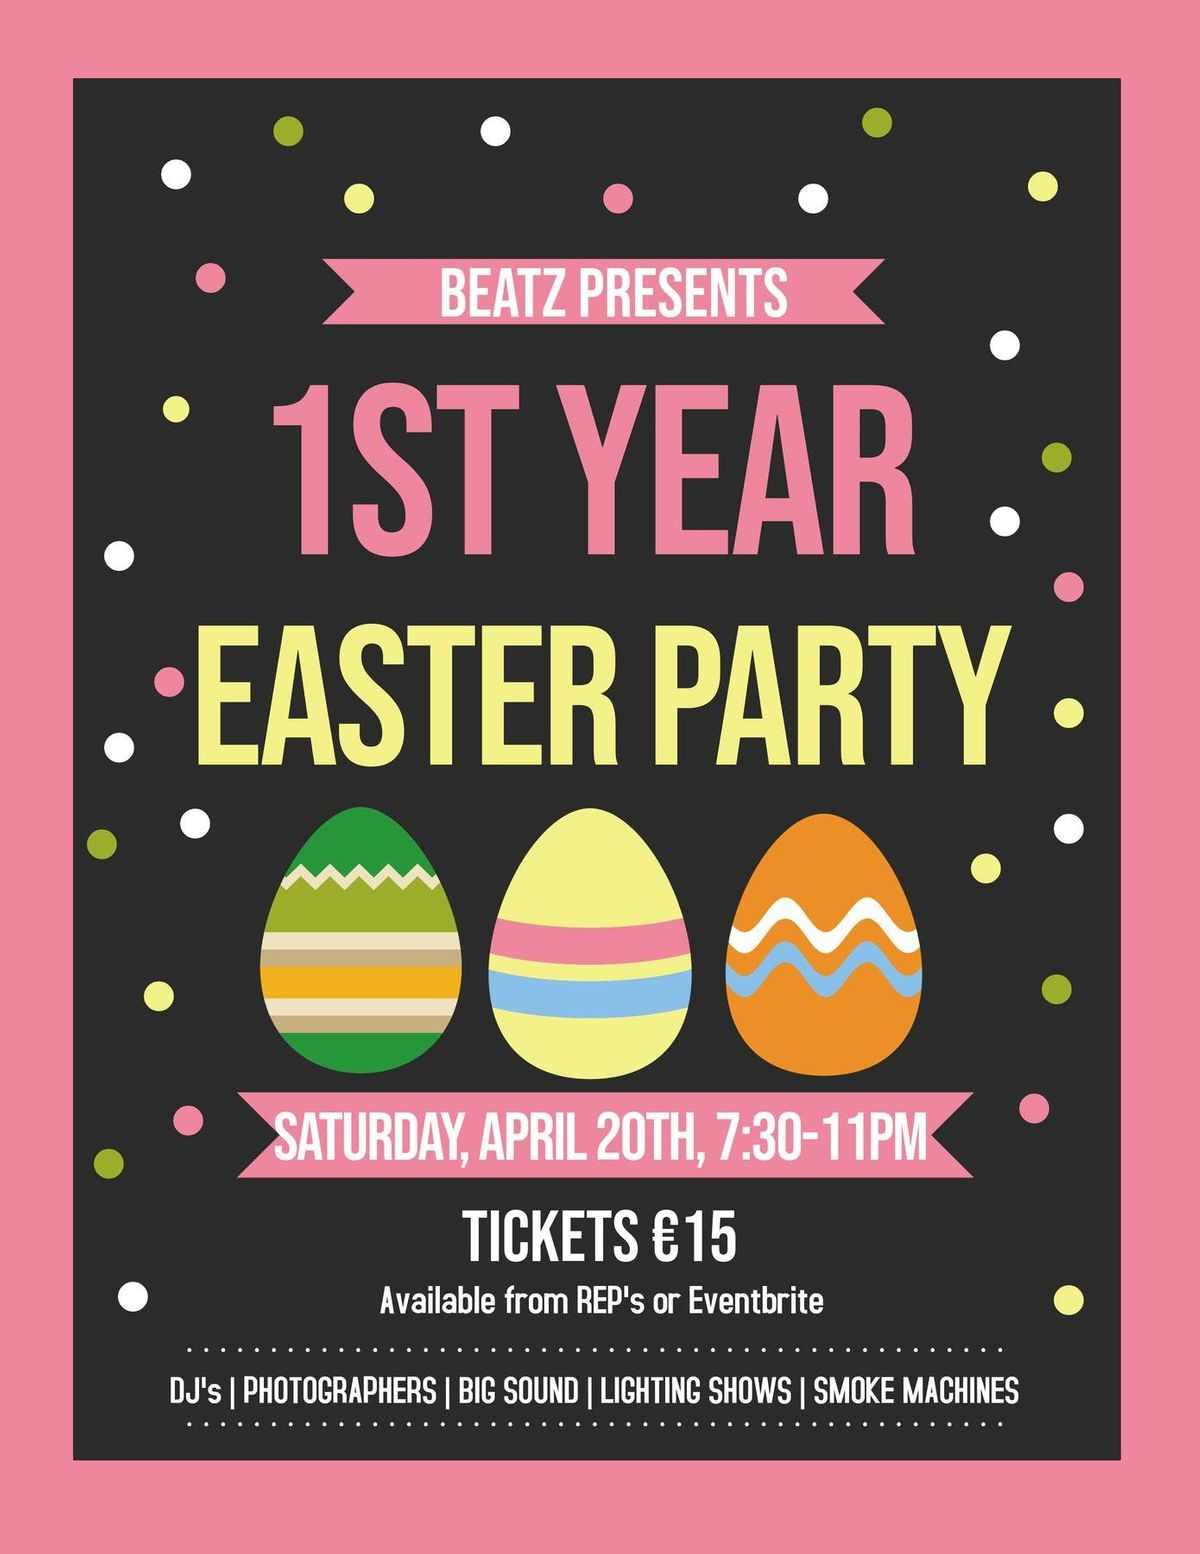 BEATZ 1st Year Easter Party